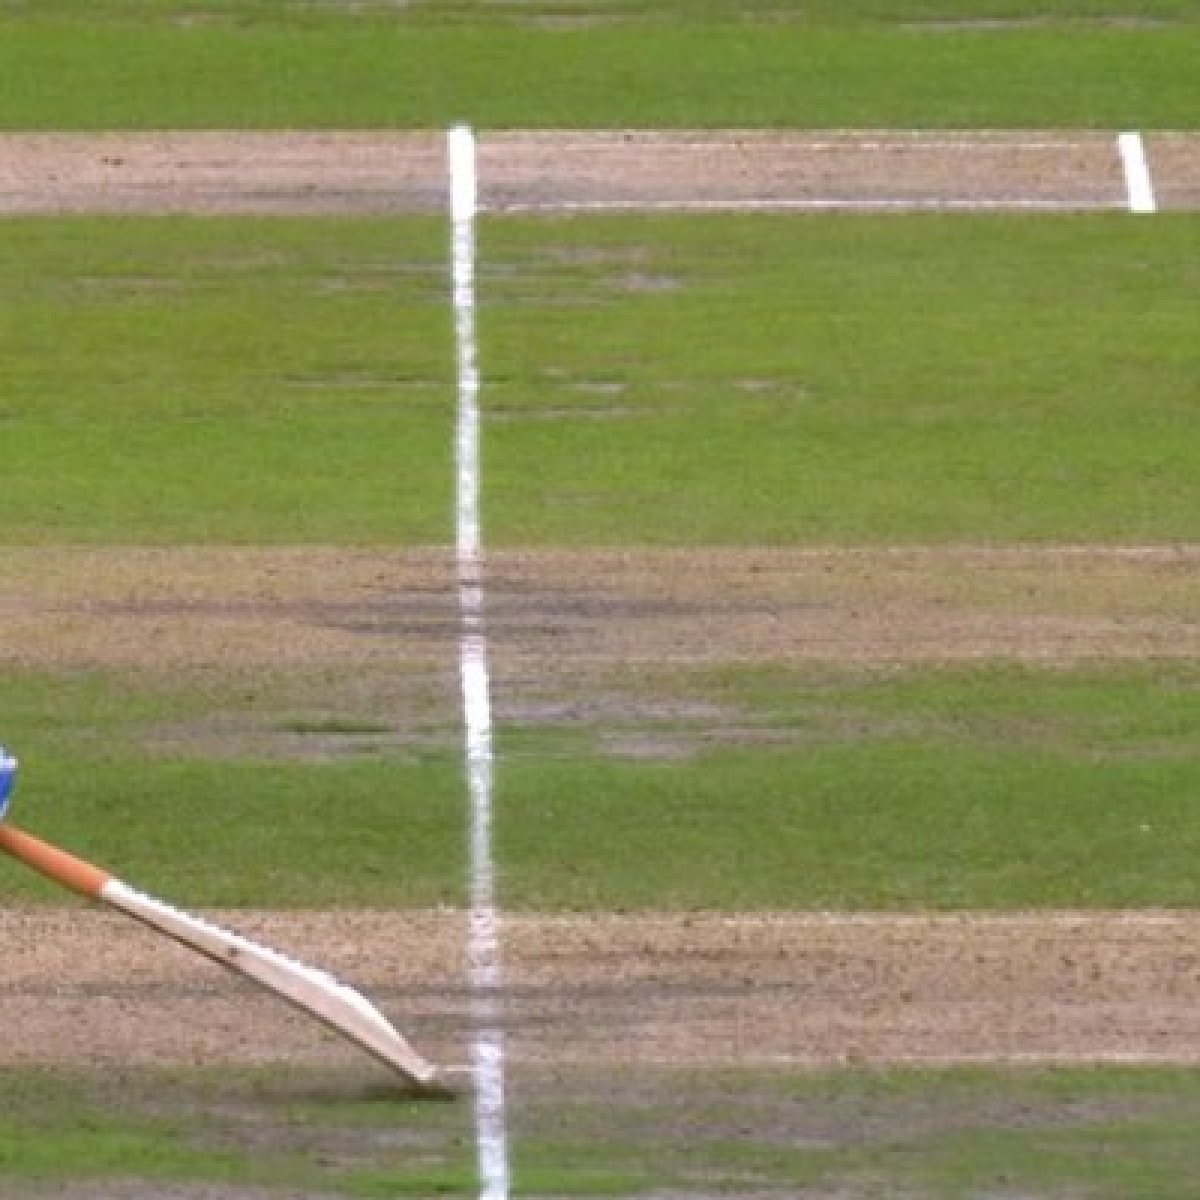 MS Dhoni retires: Similarity between Captain Cool's first and last international cricket match